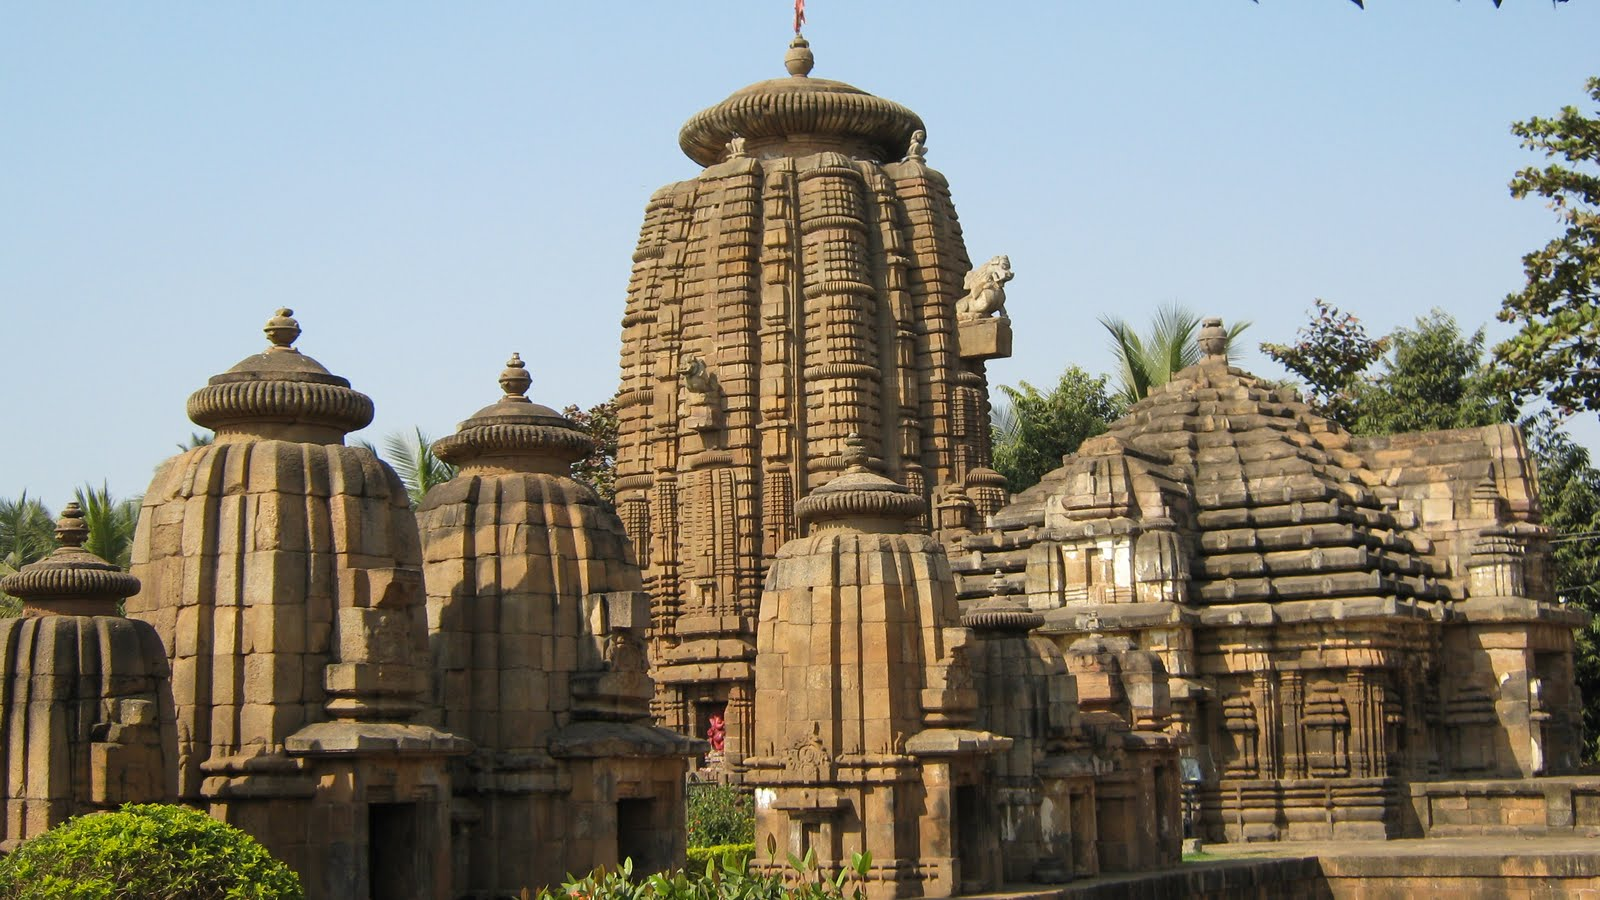 Free Wallpapers Of India: Free Wallpaper Of Siddheshwar ...